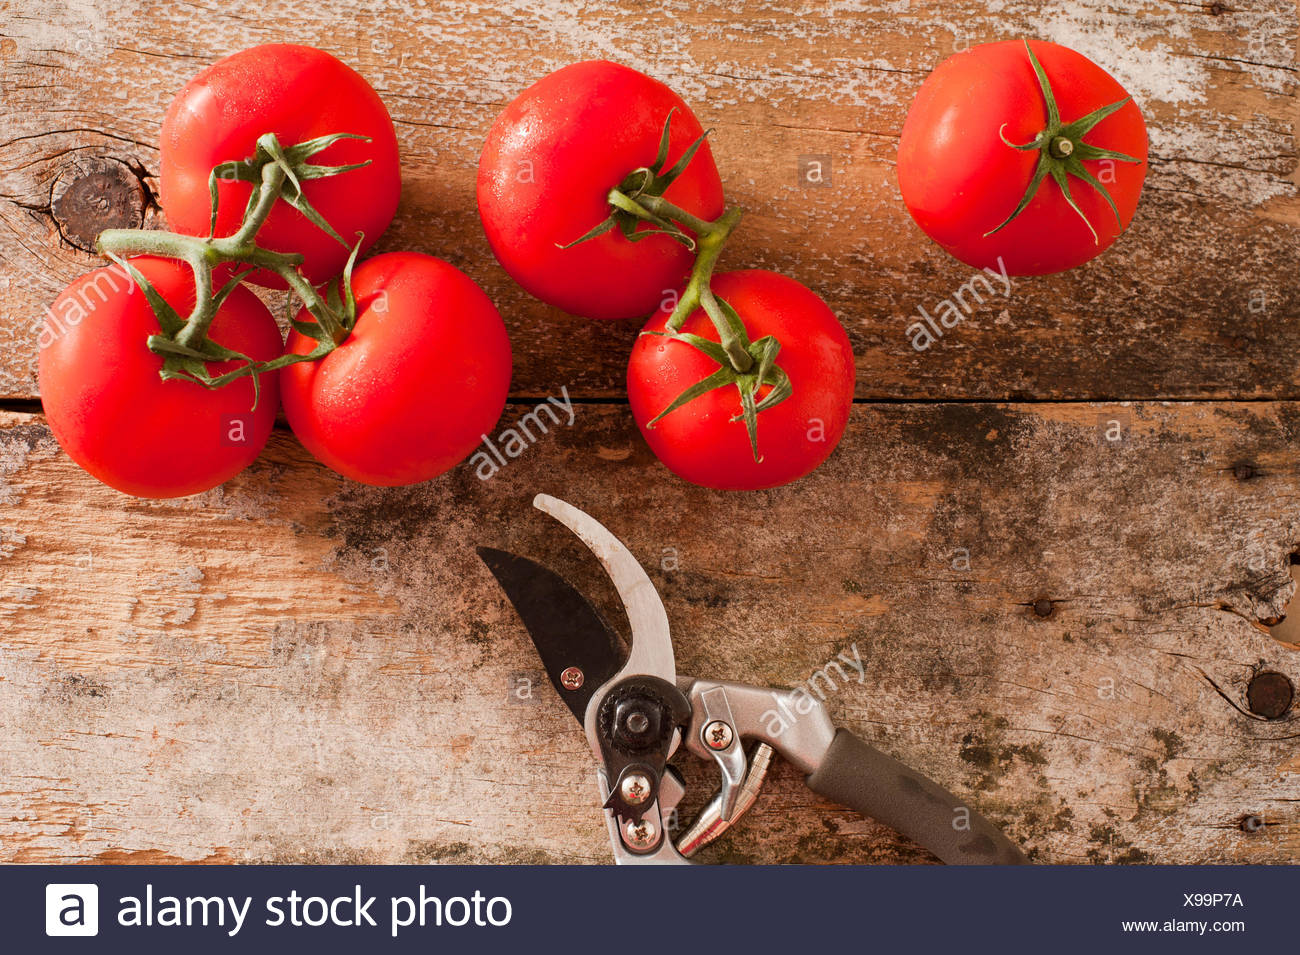 Garden fresh ripe red tomatoes picked from the vine lying on an old ...